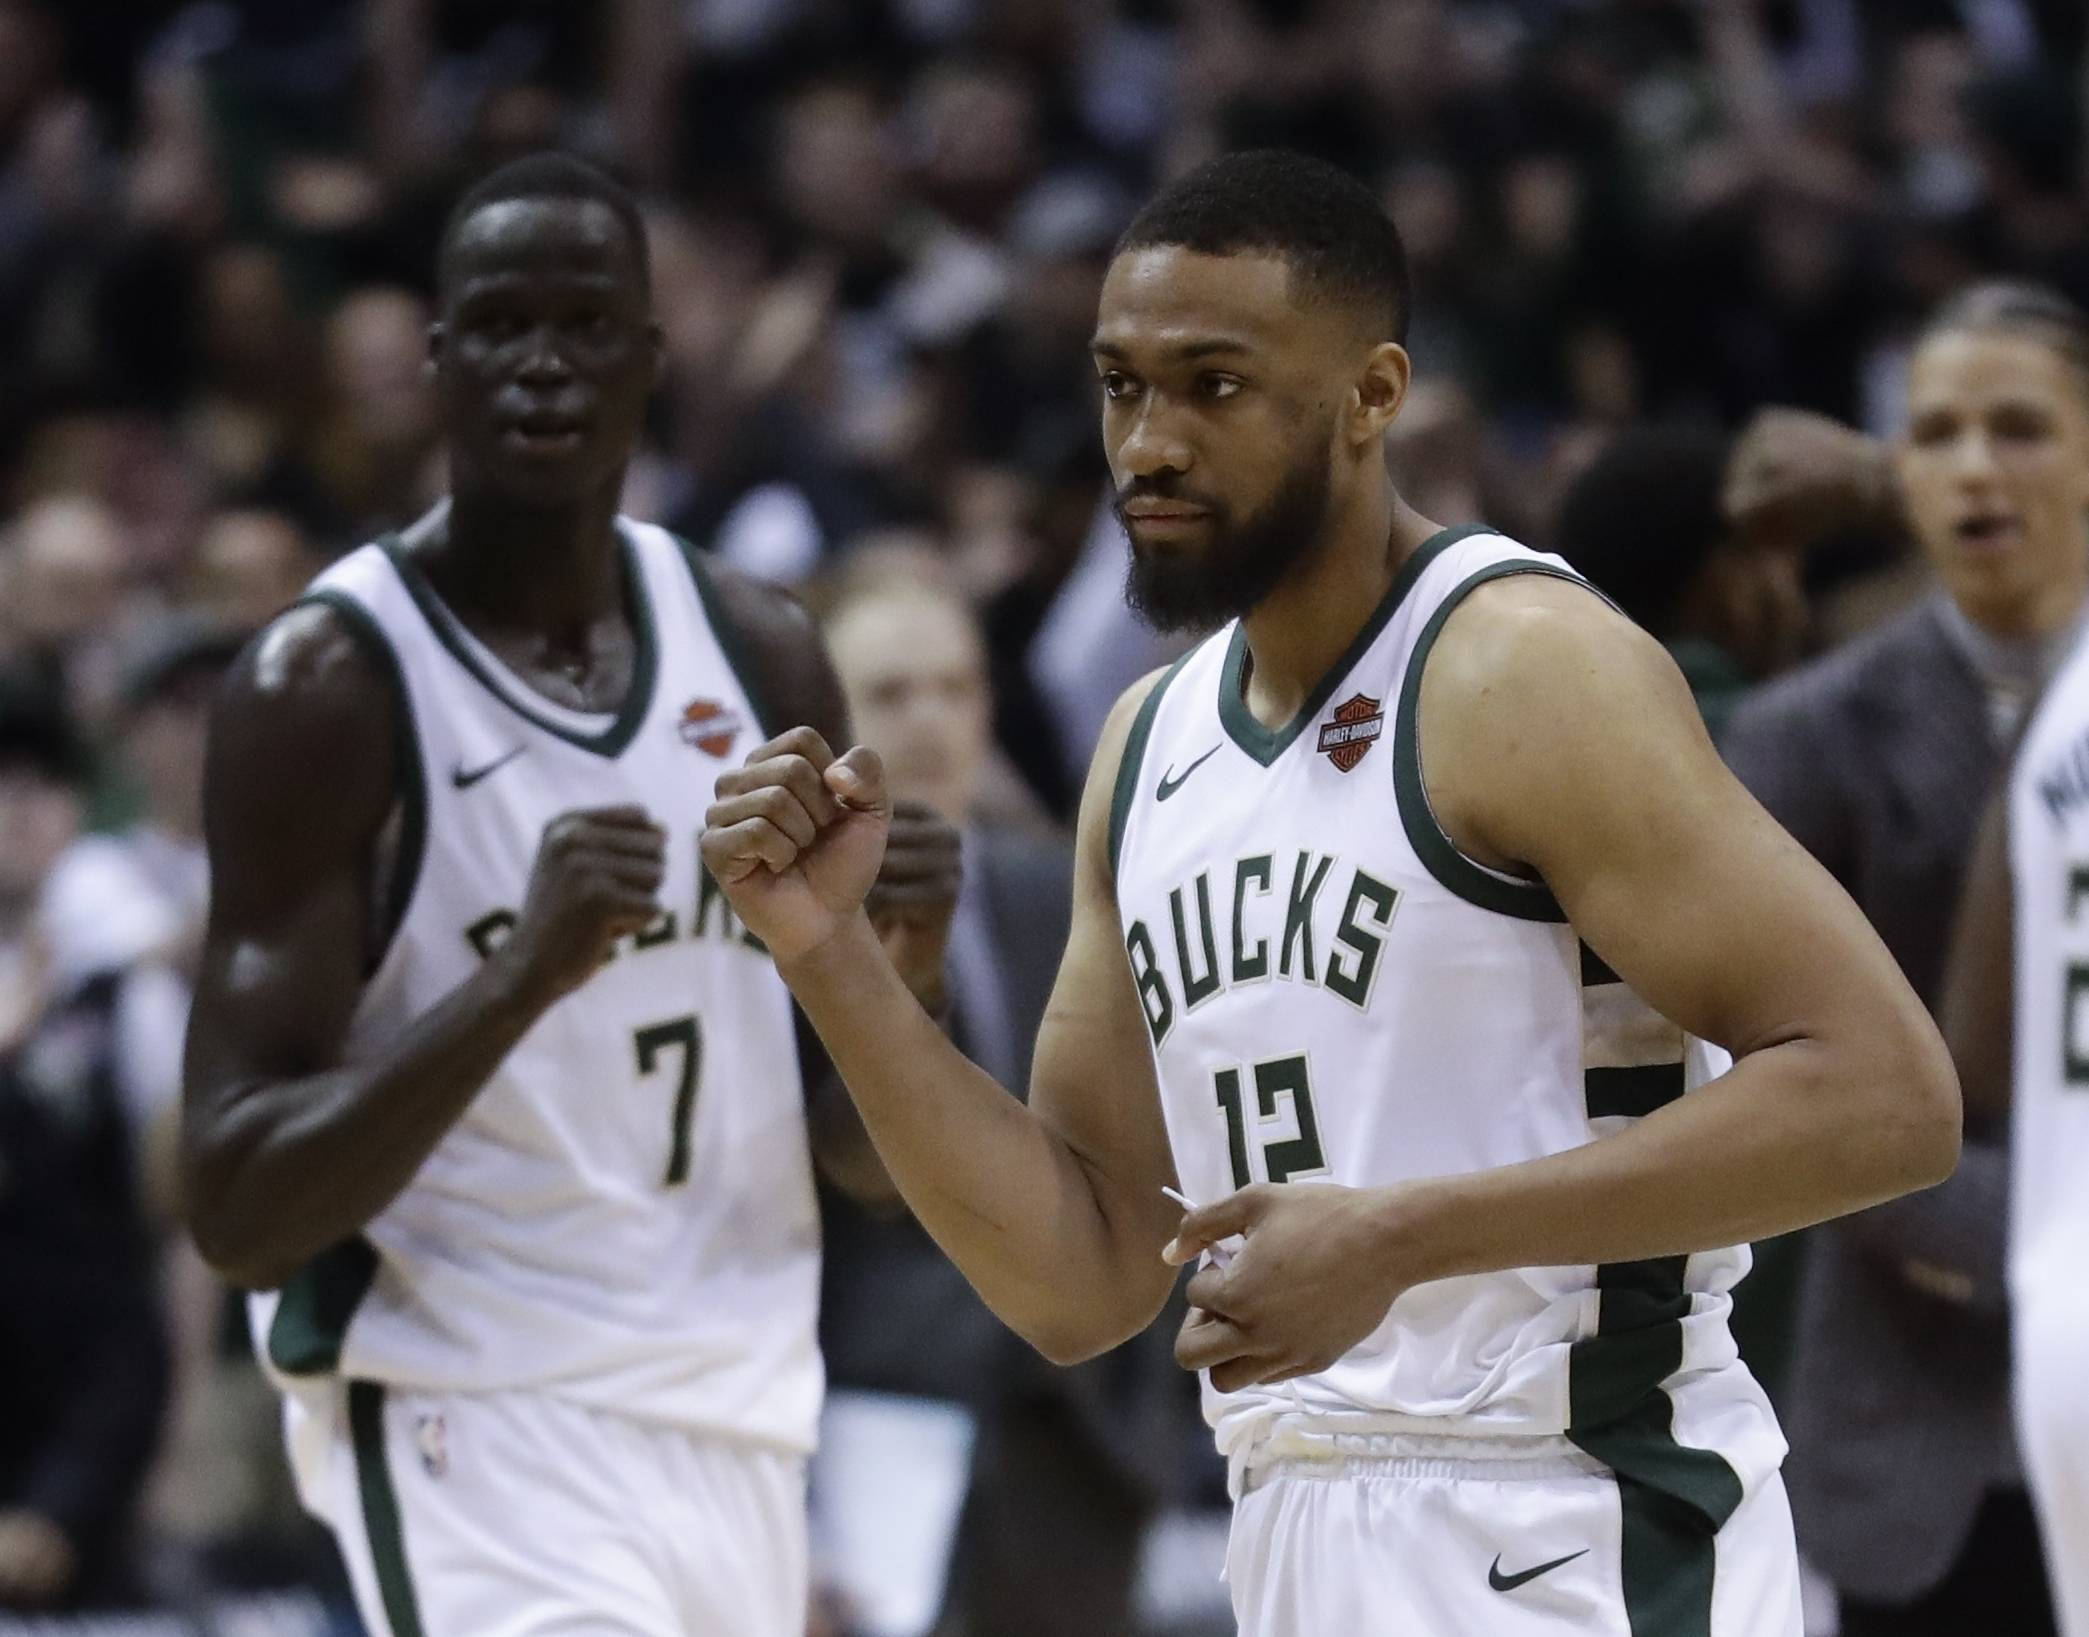 Milwaukee Bucks' Thon Maker (7) and Jabari Parker celebrate after a first-round playoff game last April.